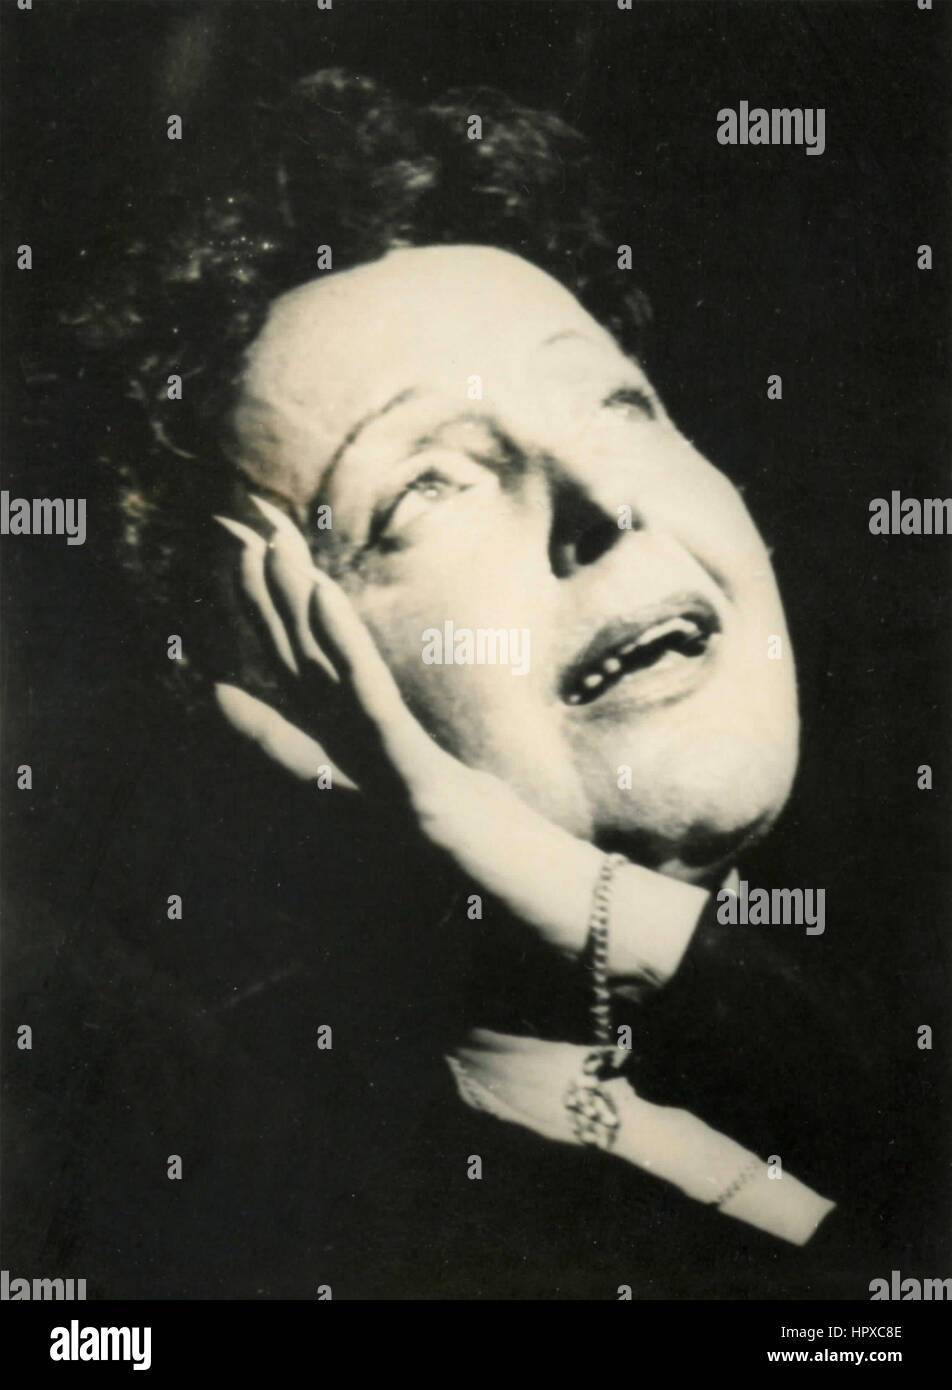 French singer Edith Piaf - Stock Image